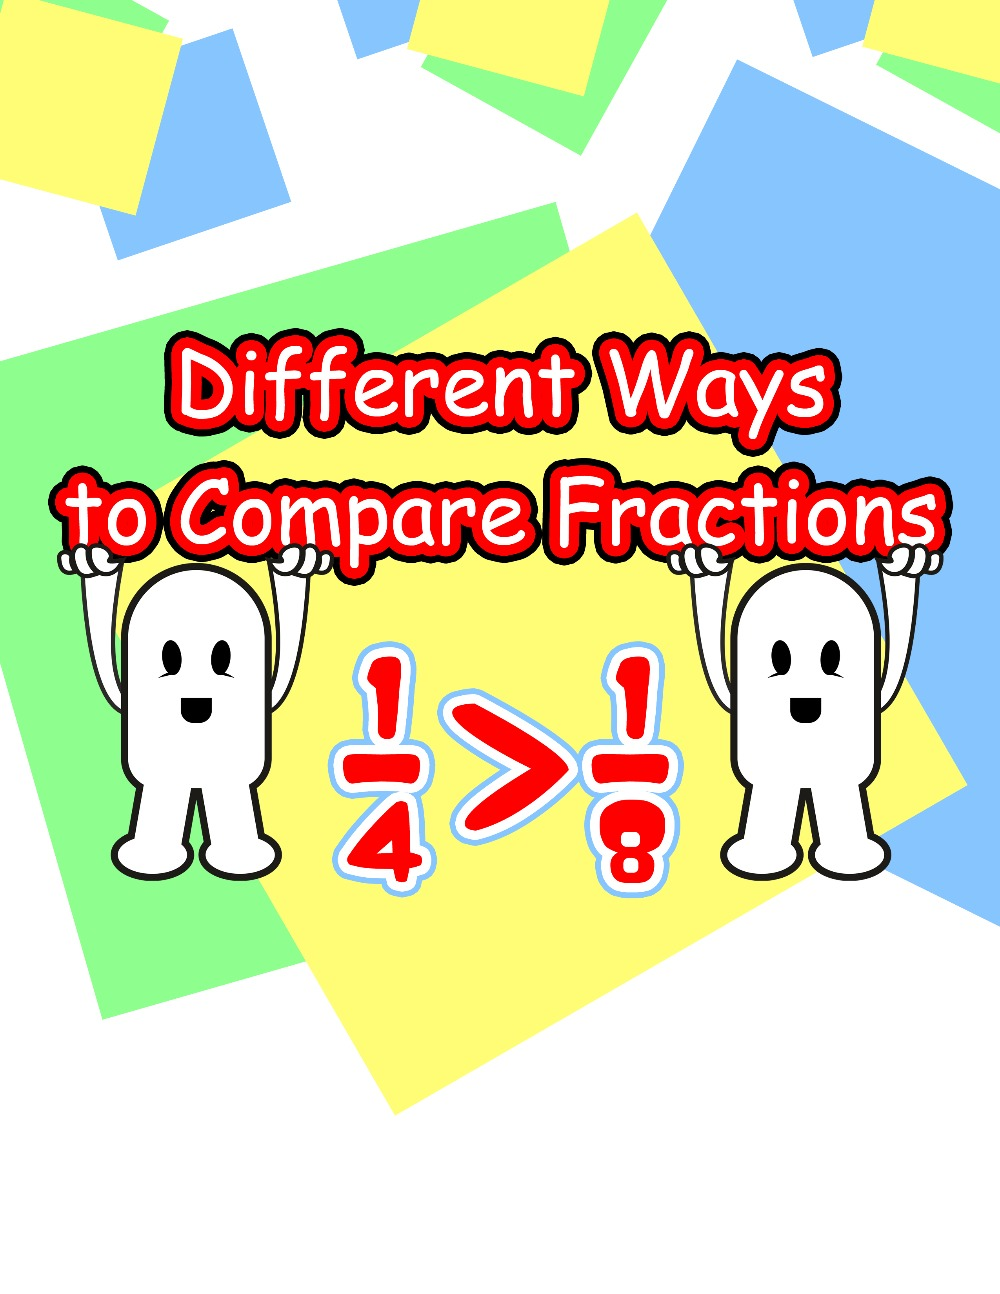 Different Ways to Compare Fractions